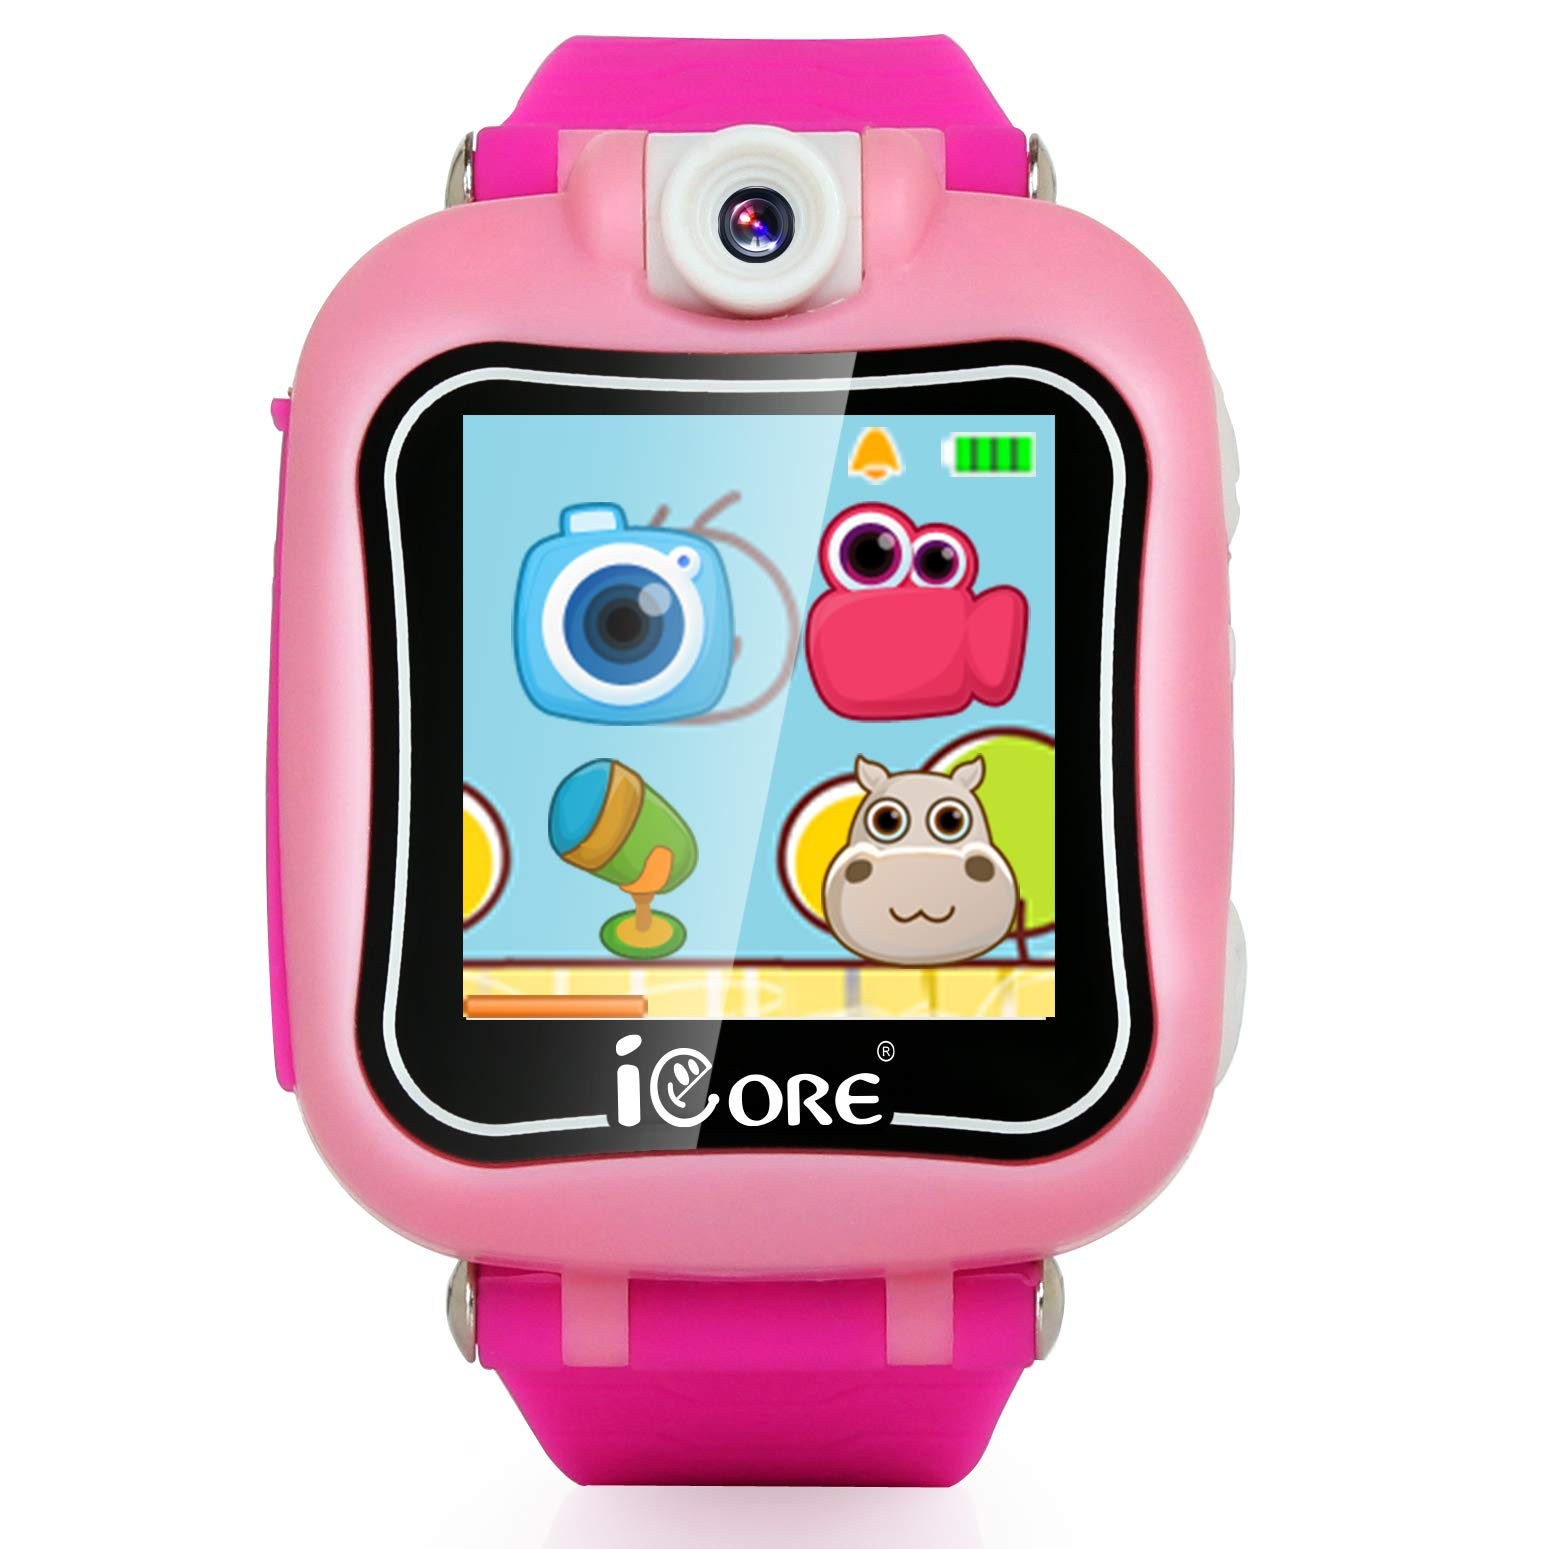 iCore Durable Kids Smartwatch, Electronic Child Smart Watch Video Games, Children Digital Tech Watches, Touch Screen Learning Timer Alarm Clock with Camera for Girls Boys by iCore (Image #2)